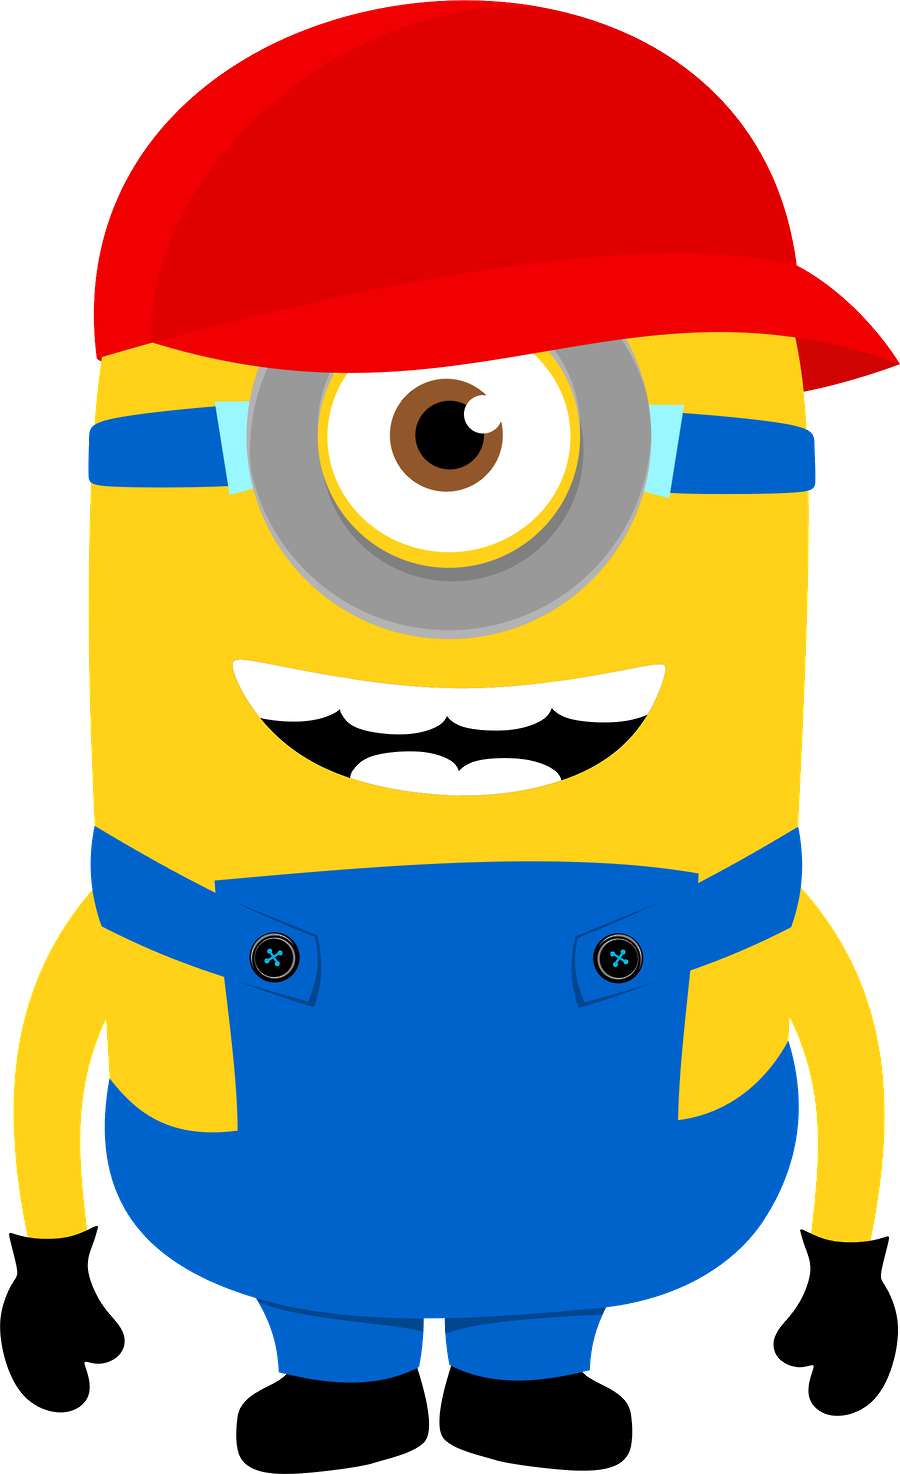 Superheroes clipart minion. Pin by andrea brydges